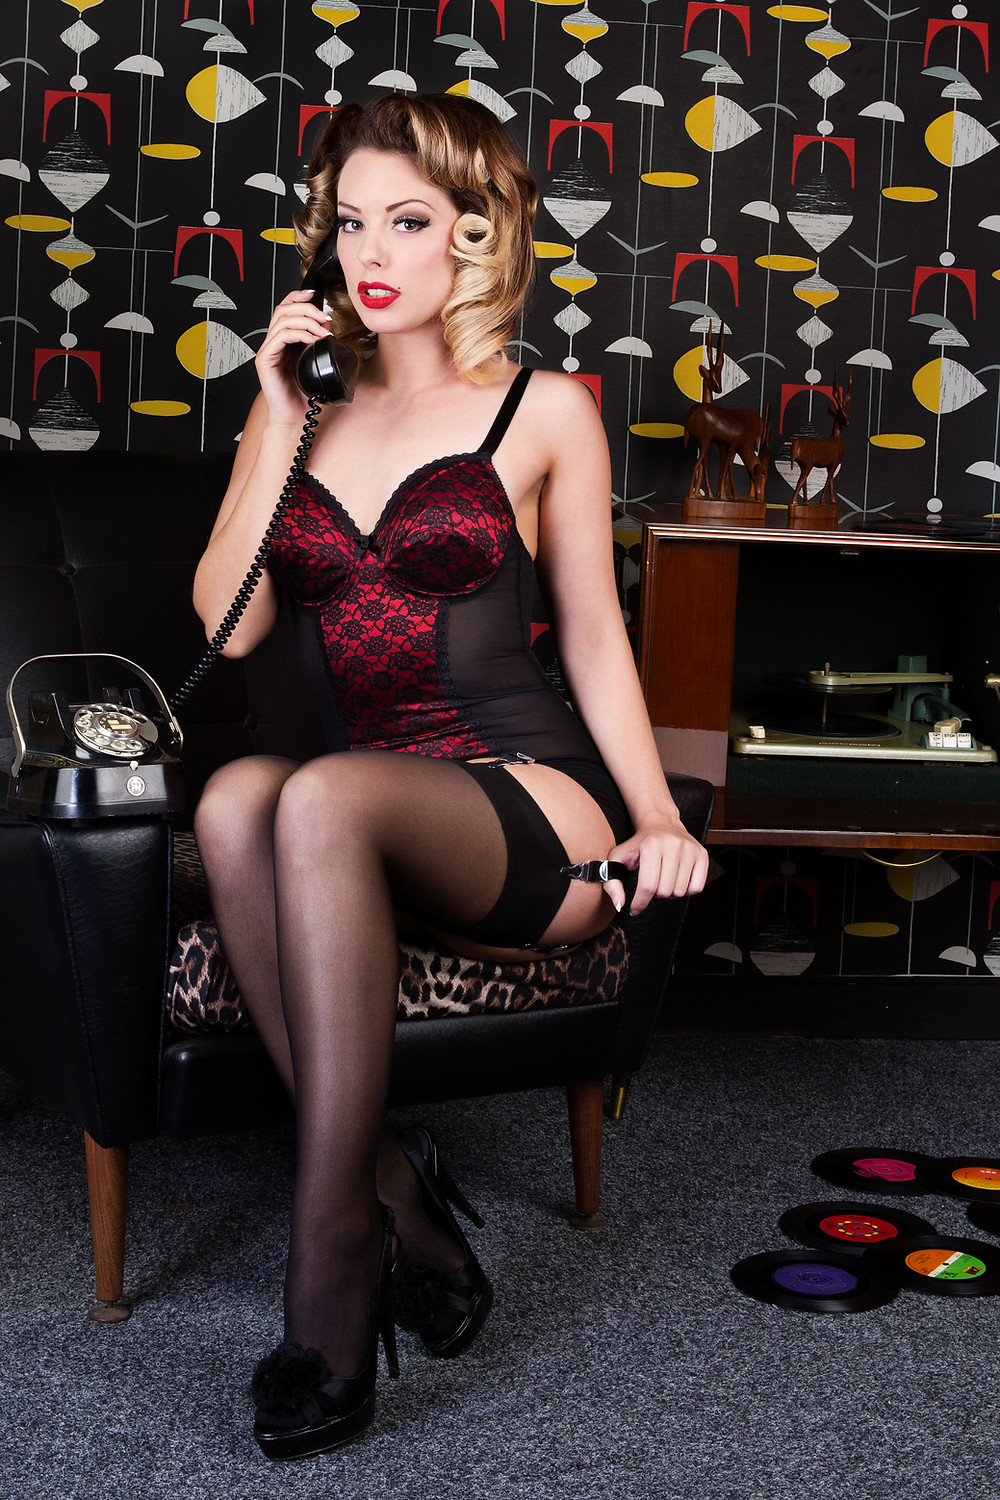 Heather Valentine Vintage Pin Up Model Striptease by The Pinup Academy | Featured in Pinups & Kustoms Magazine